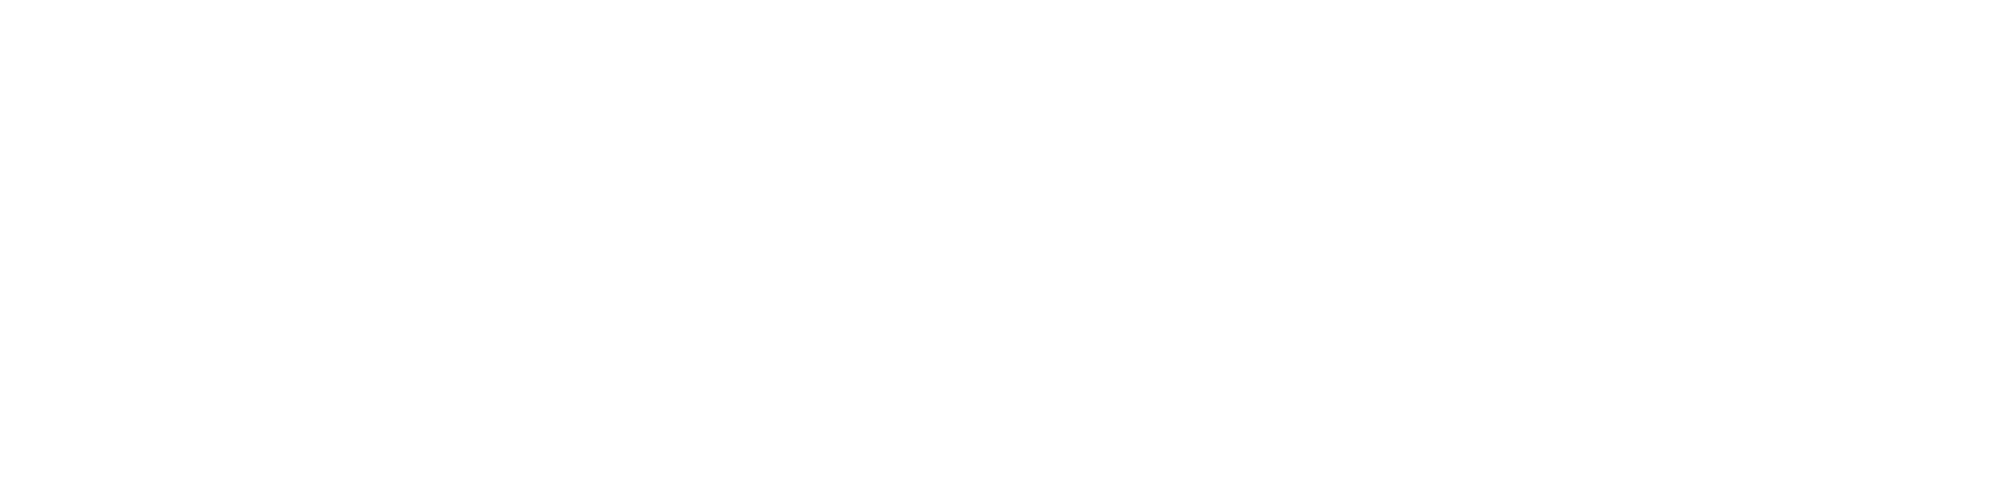 Responsive logos for Chanel - different logo on mobile, tablet and laptop.